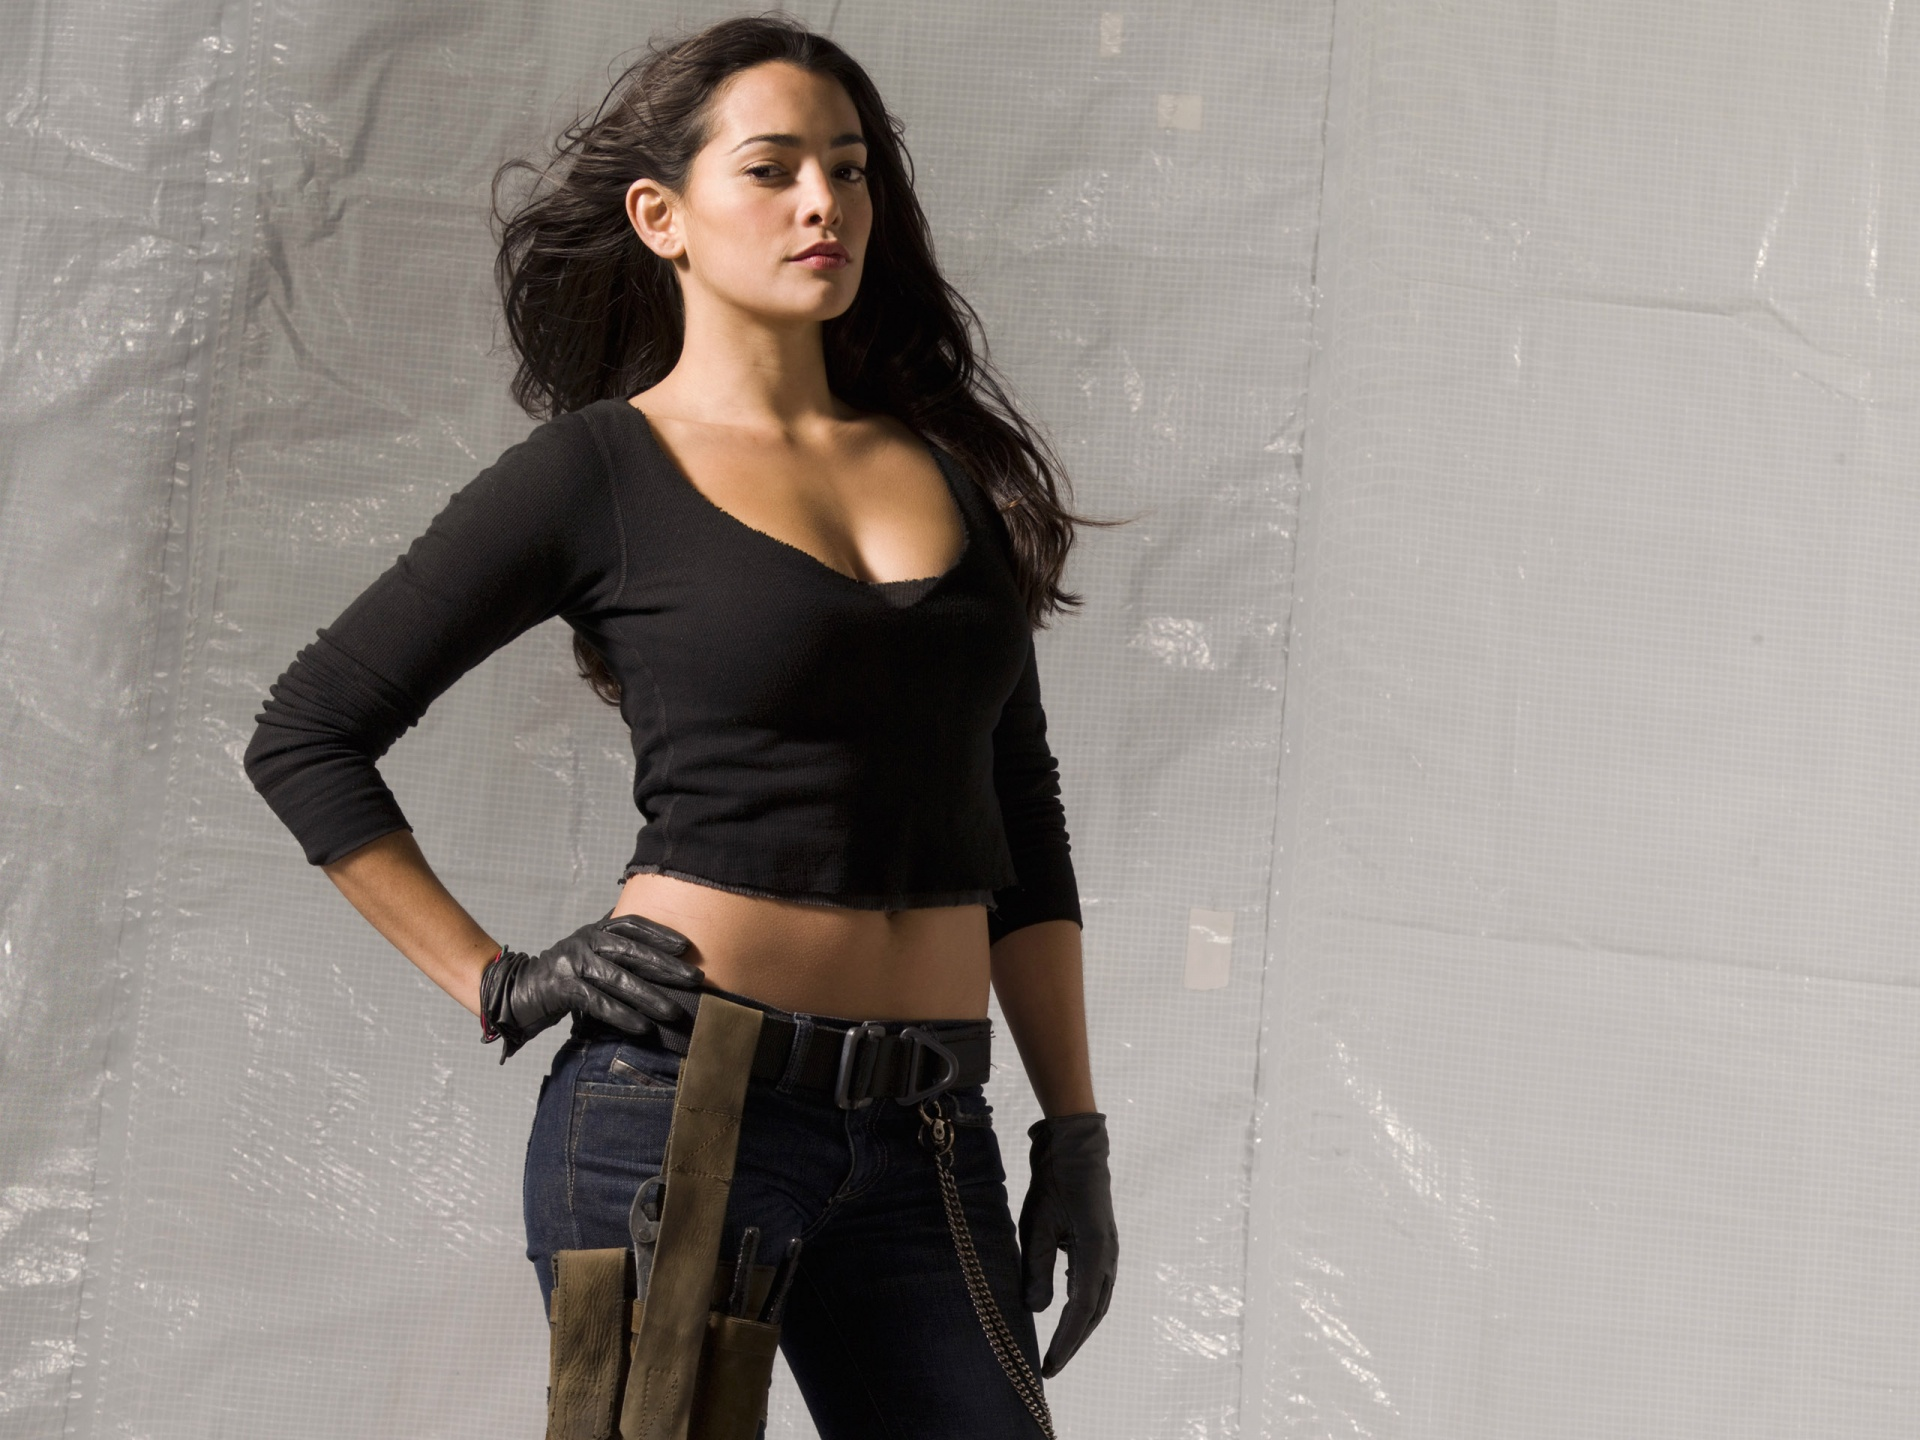 natalie martinez wallpapers hd A5